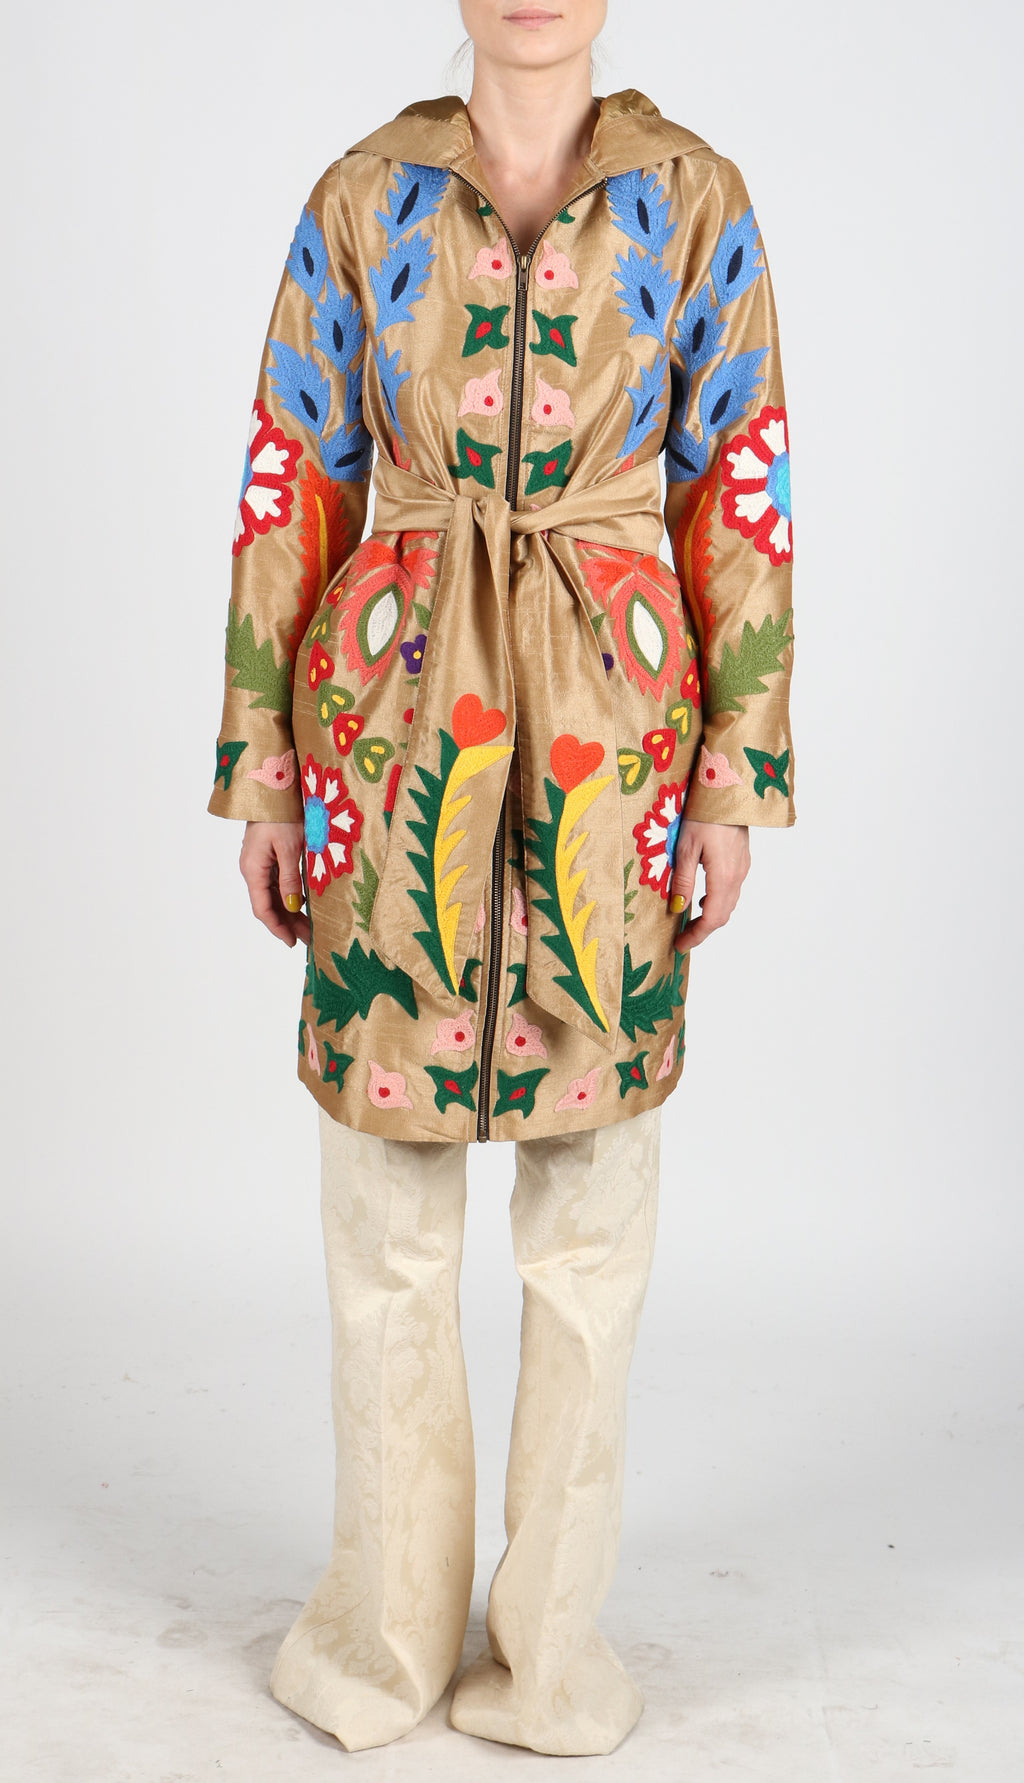 Fanm Mon LORES Vyshyvanka Hoodie Embroidered Brown Coat Multi Floral Embroidery Silk Jacket